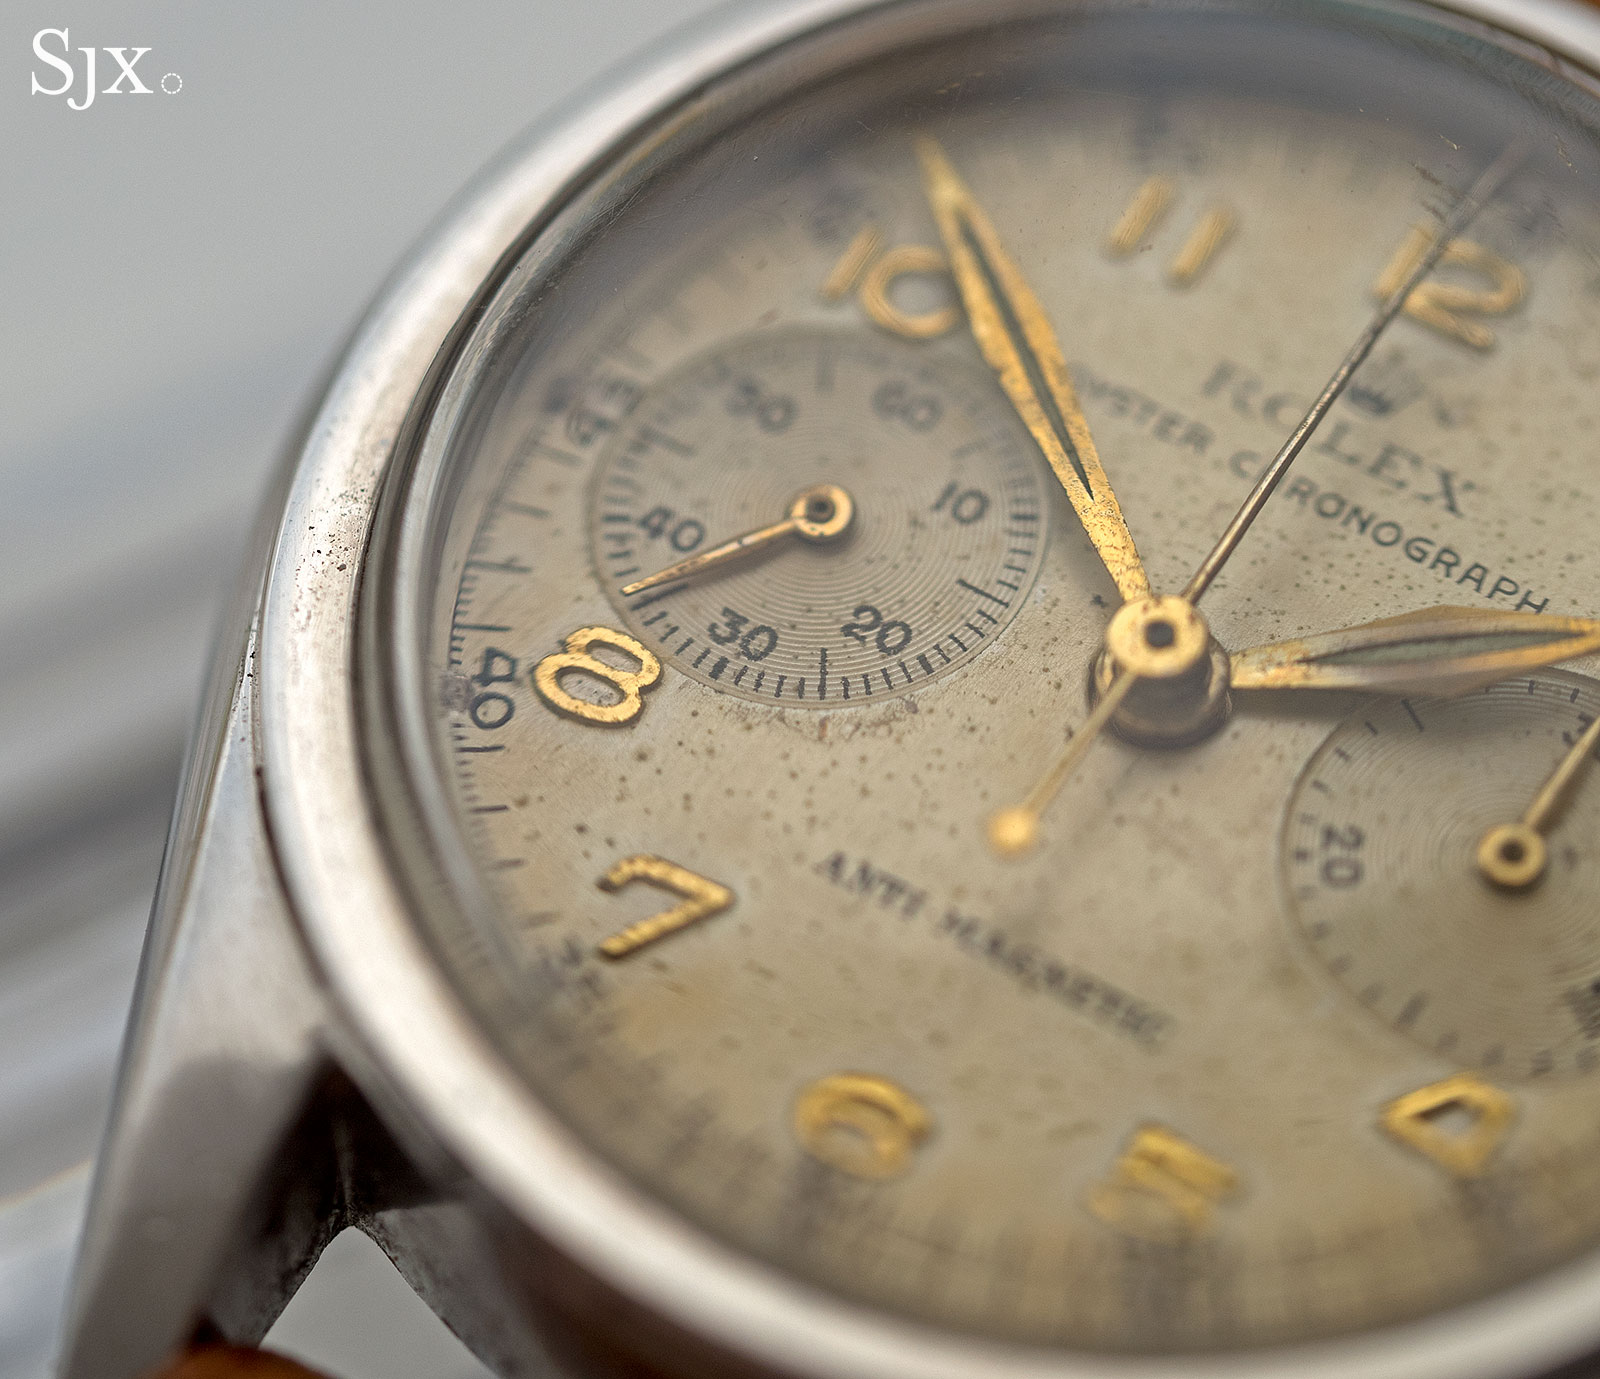 Rolex 3481 chronograph anti-magnetic 3